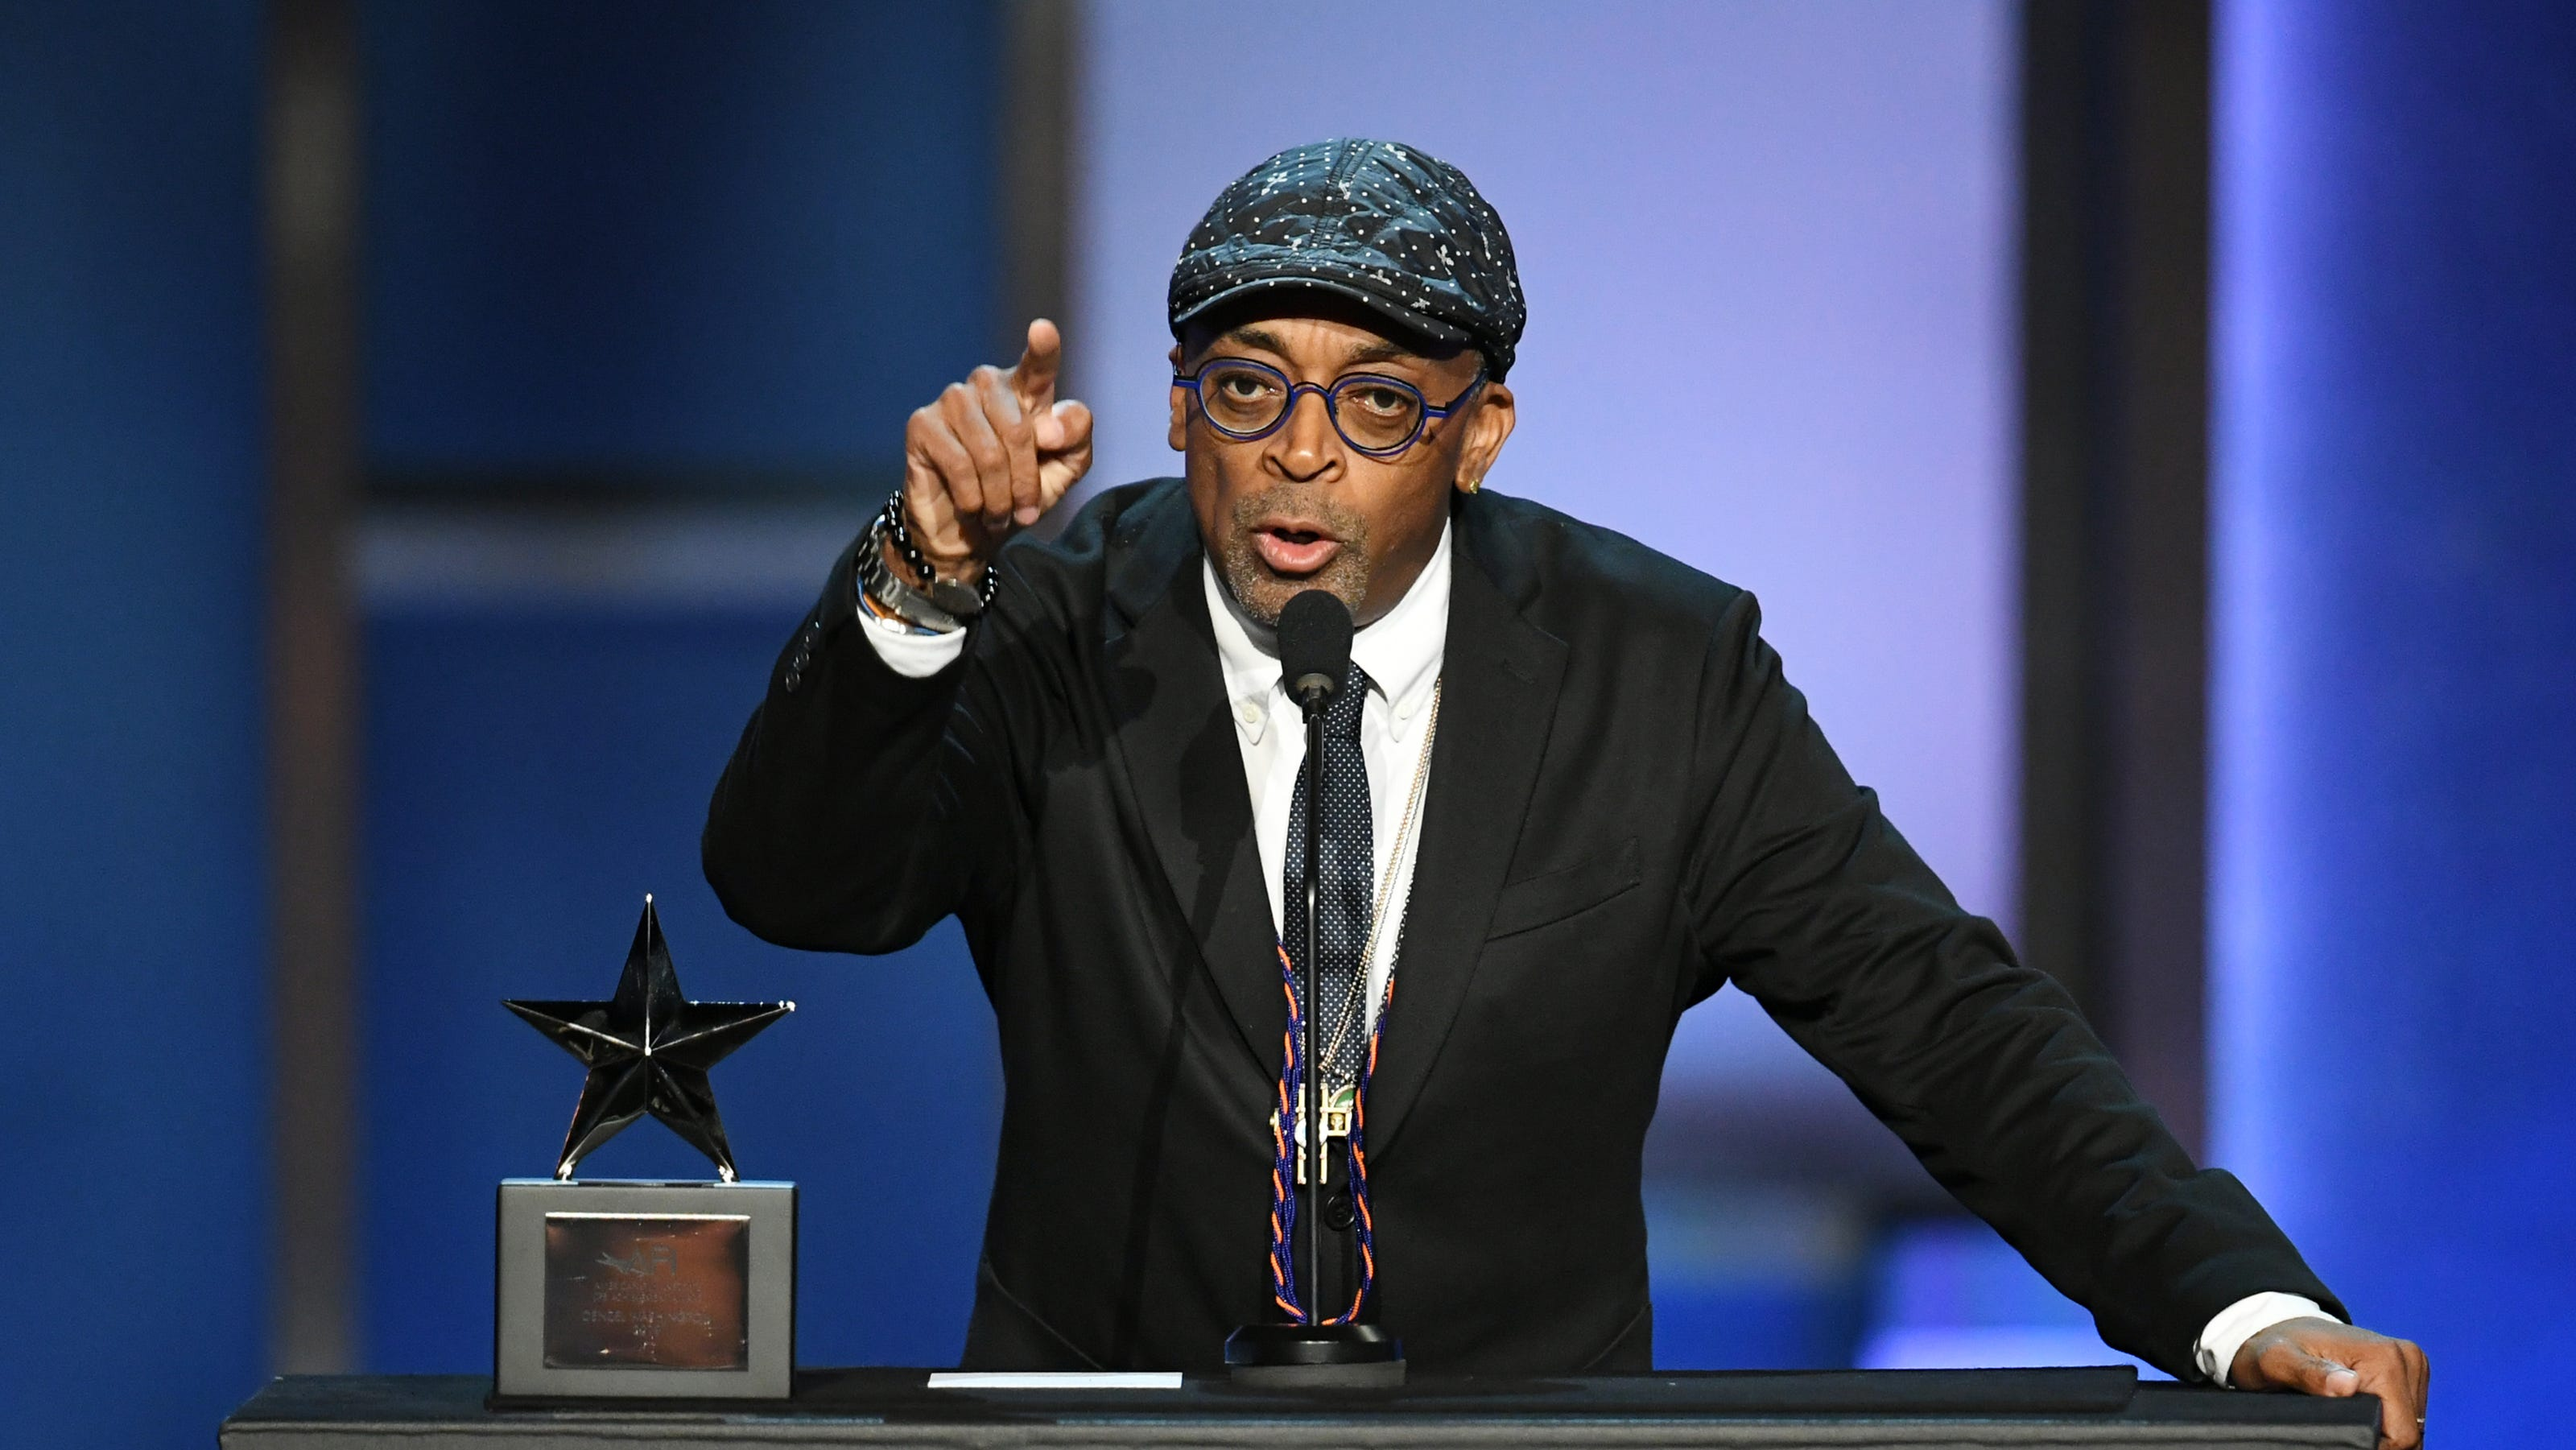 Spike Lee says Donald Trump 'will go down in history with the likes of Hitler' in New York Film Critics speech